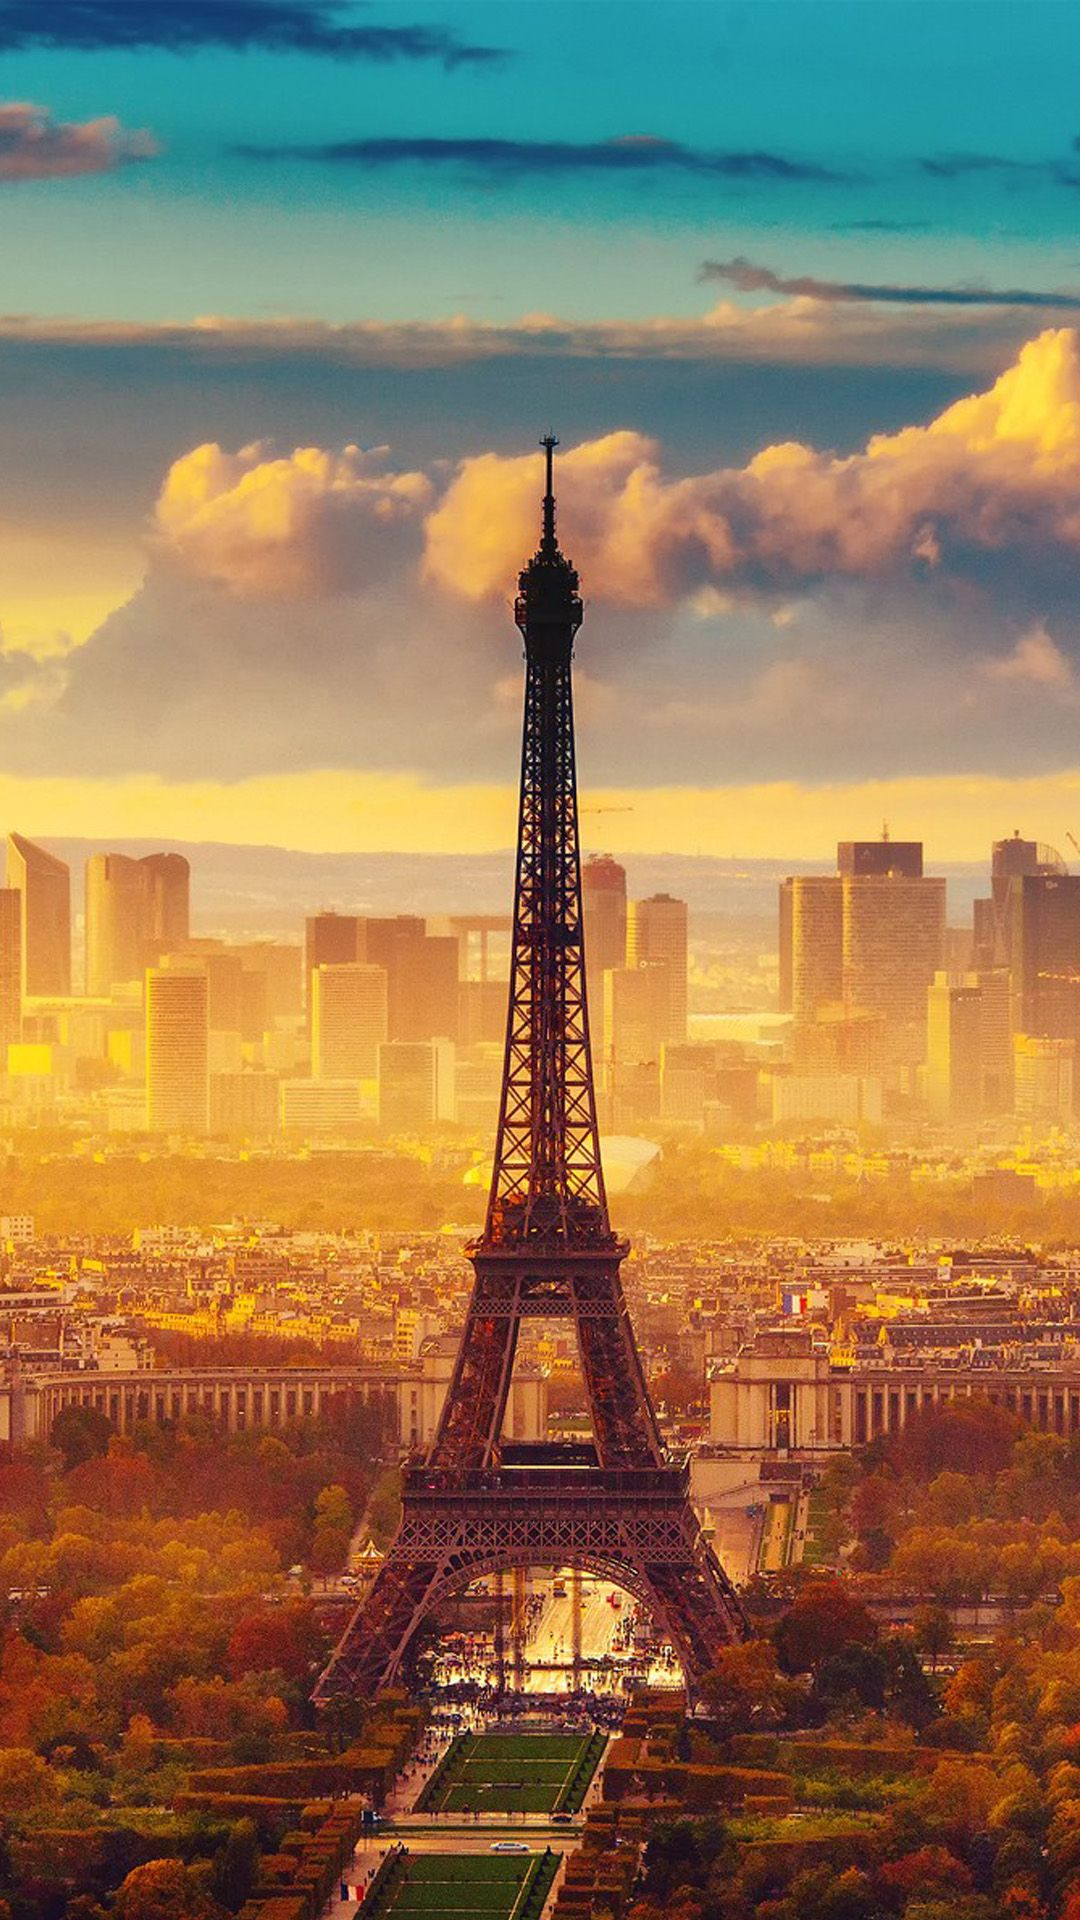 Eiffel Tower, Paris, France. Beautiful city landscape. Tap